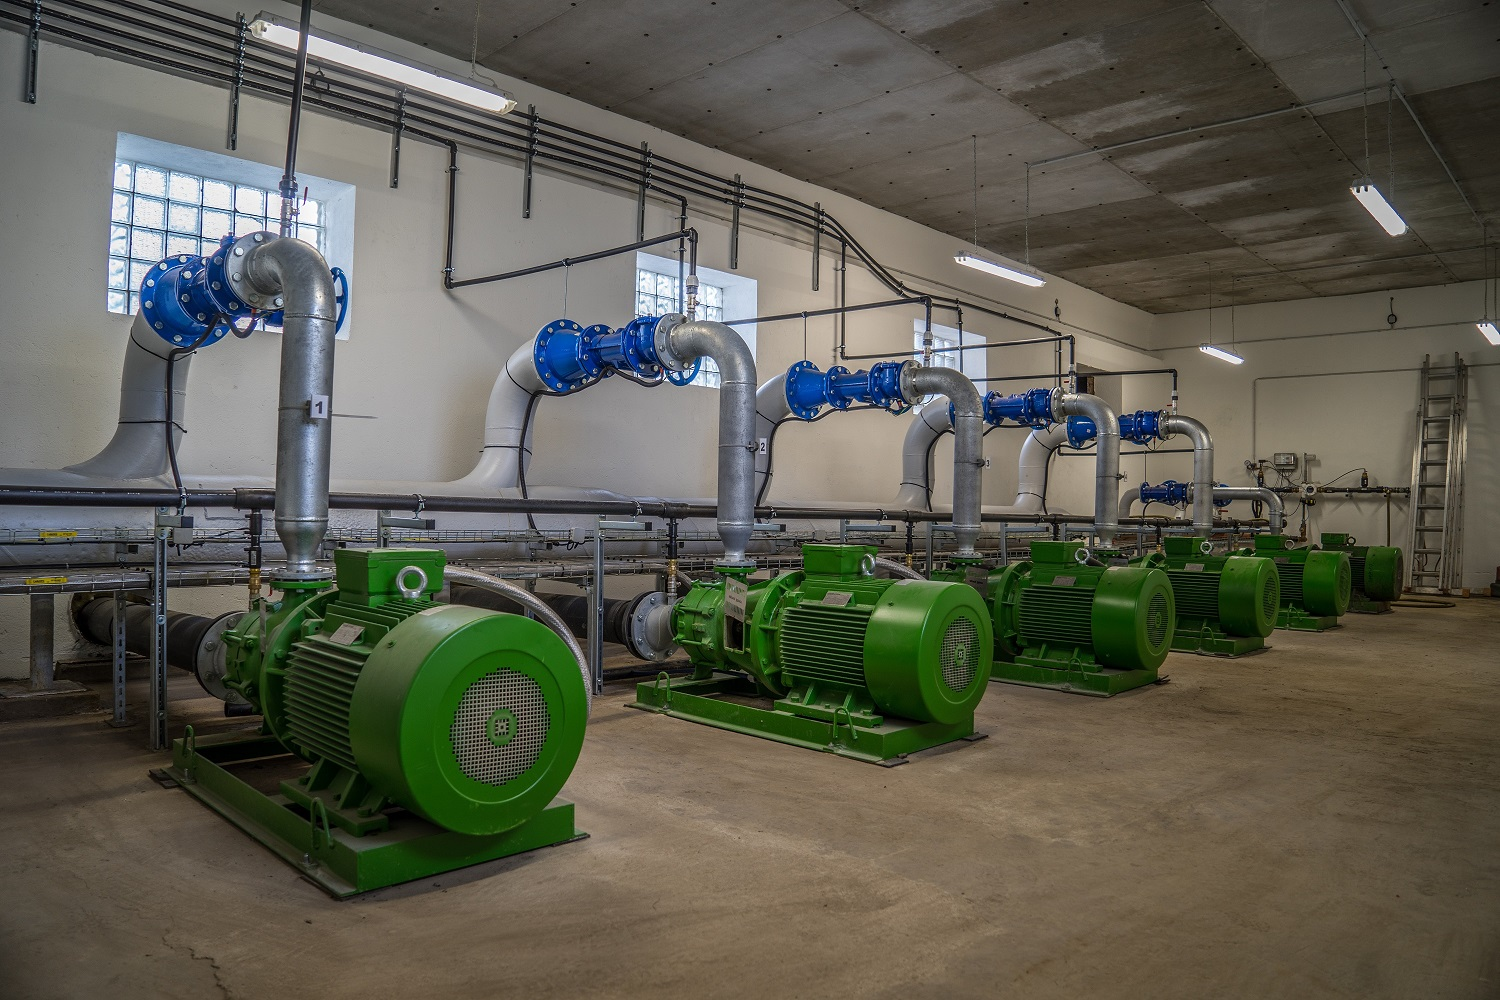 Hydro Air Damsdorf Pumpenstation 75KW Pumpen Steuerung Raindancer App Steuerung Total